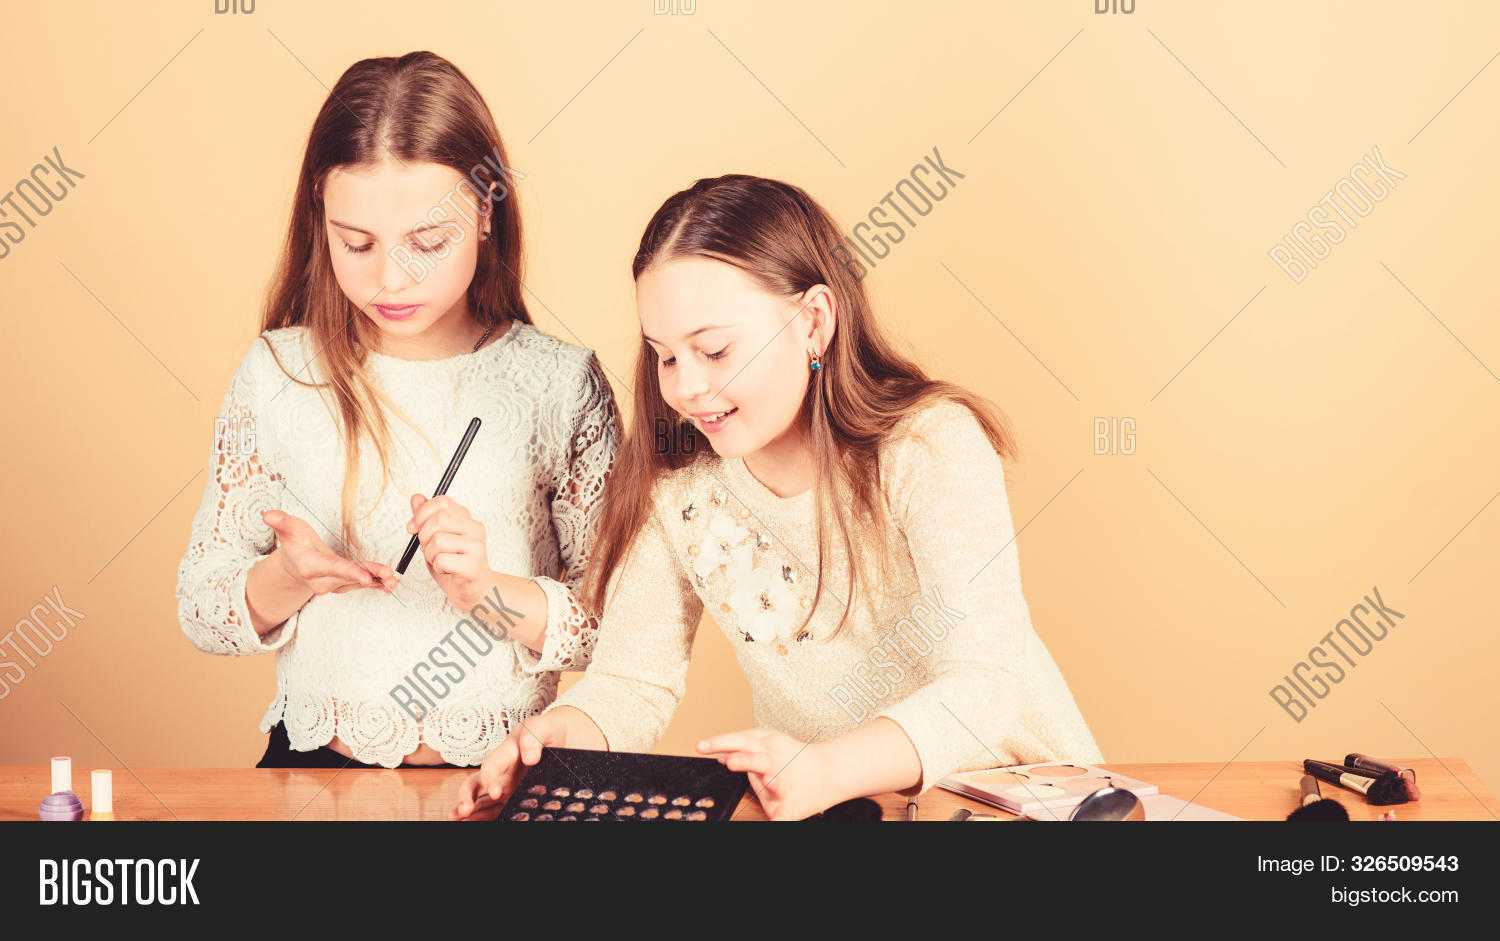 Salon And Beauty Treatment. Just Like Playing With Makeup. Makeup Courses. Children Little Girls Cho